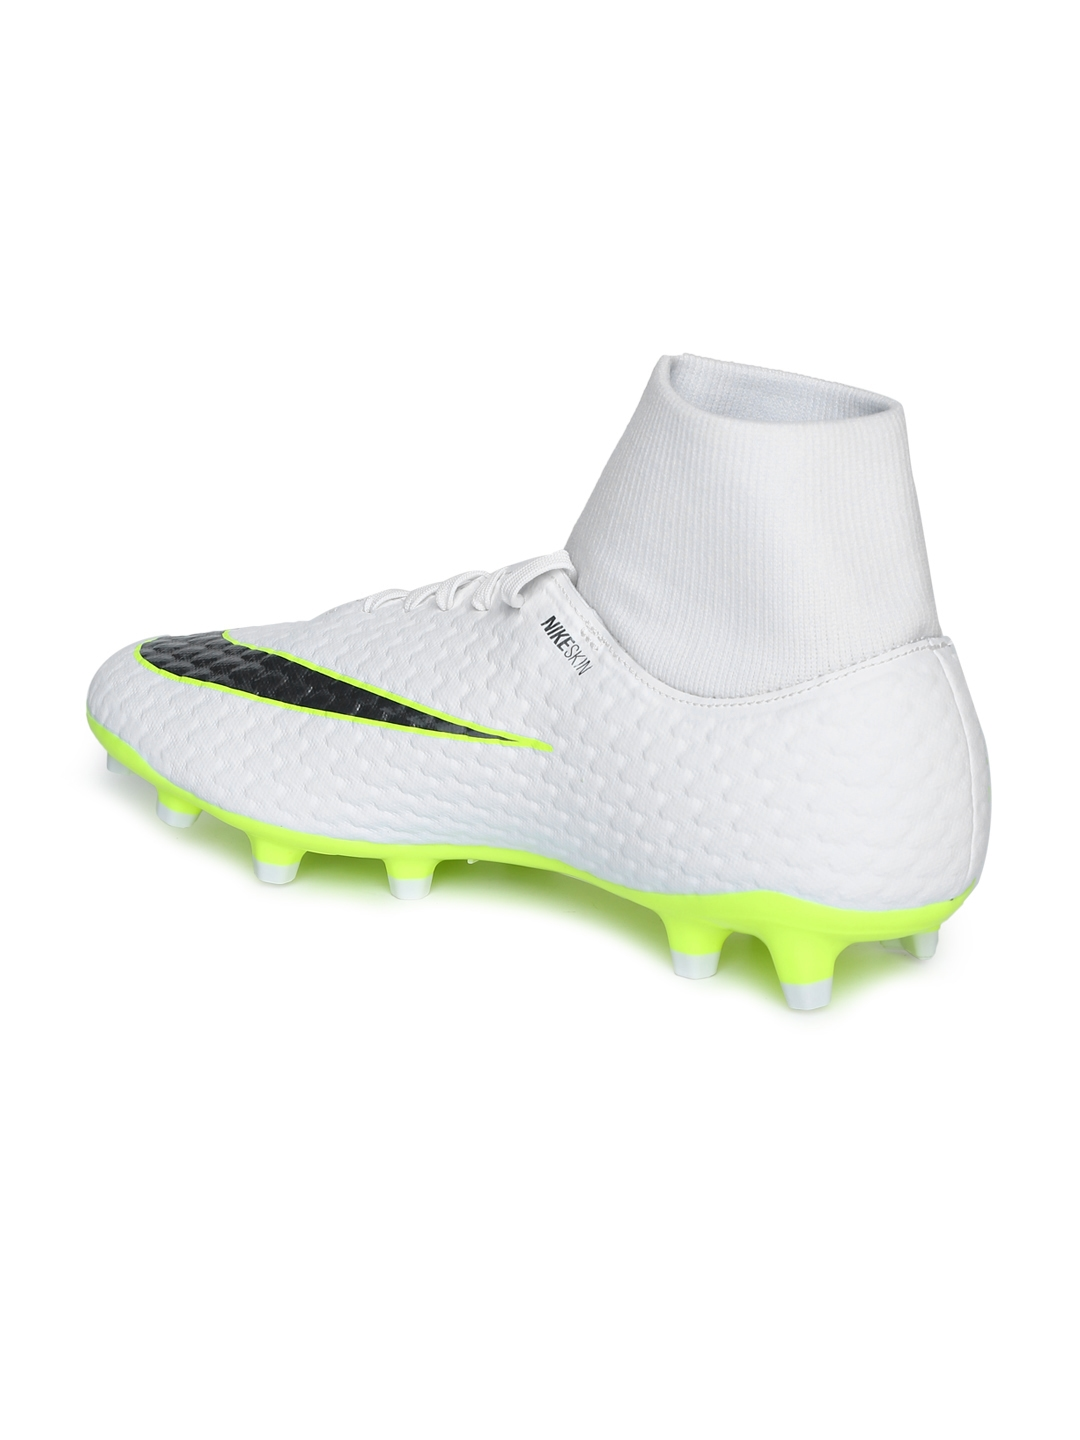 d69a72211bf1 Buy Nike Men White & Green PHANTOM 3 ACADEMY DF FG Football Shoes ...